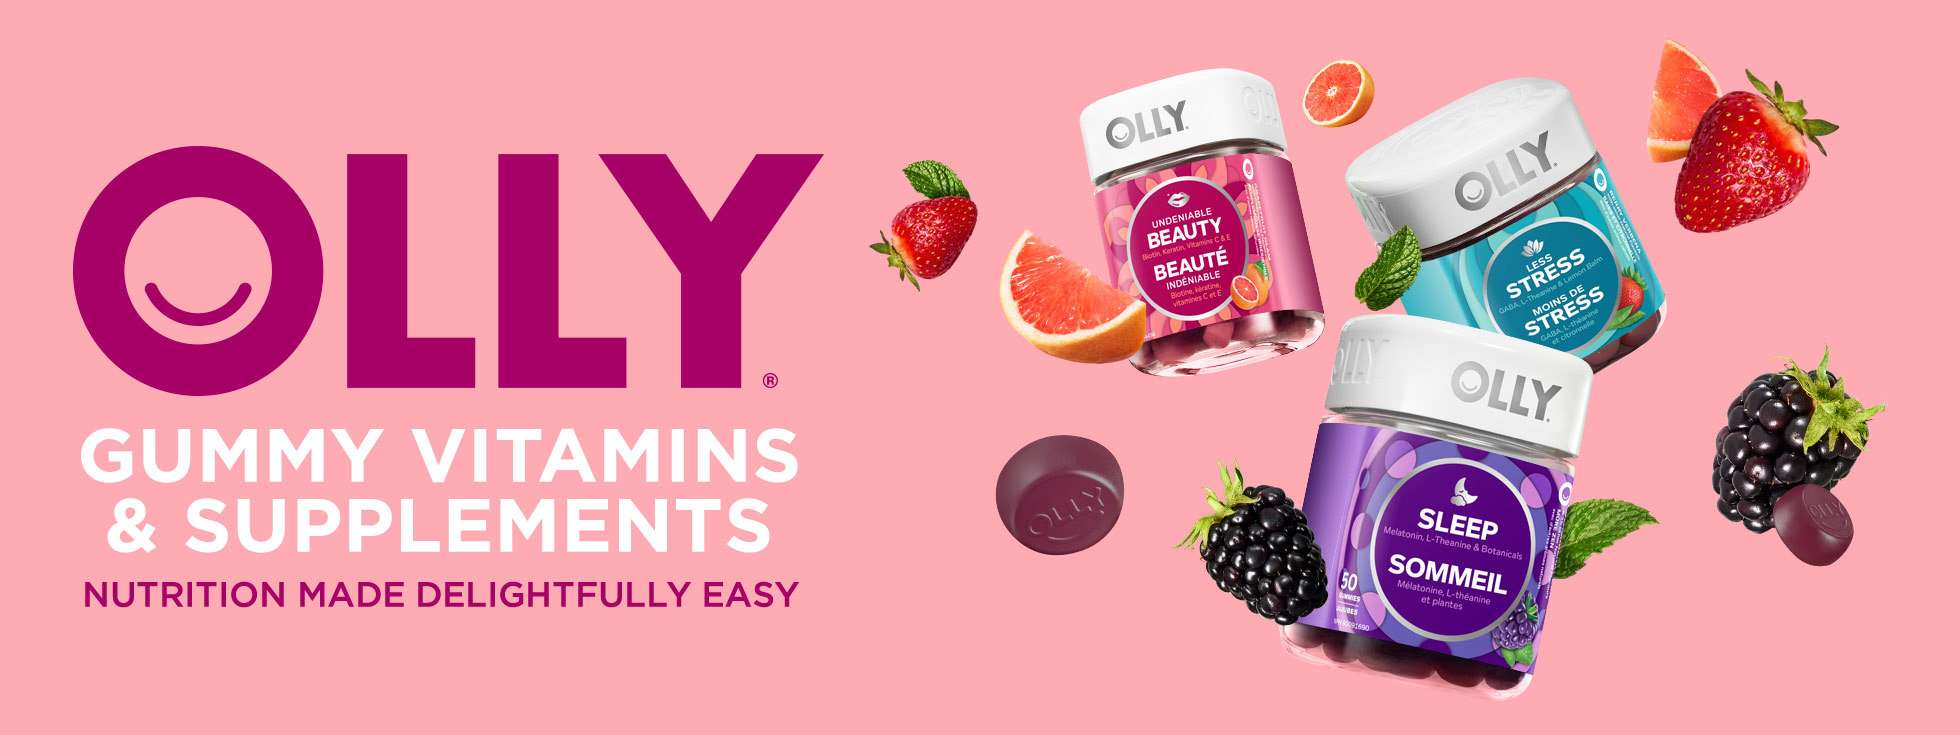 OLLY Vitamins & Supplements